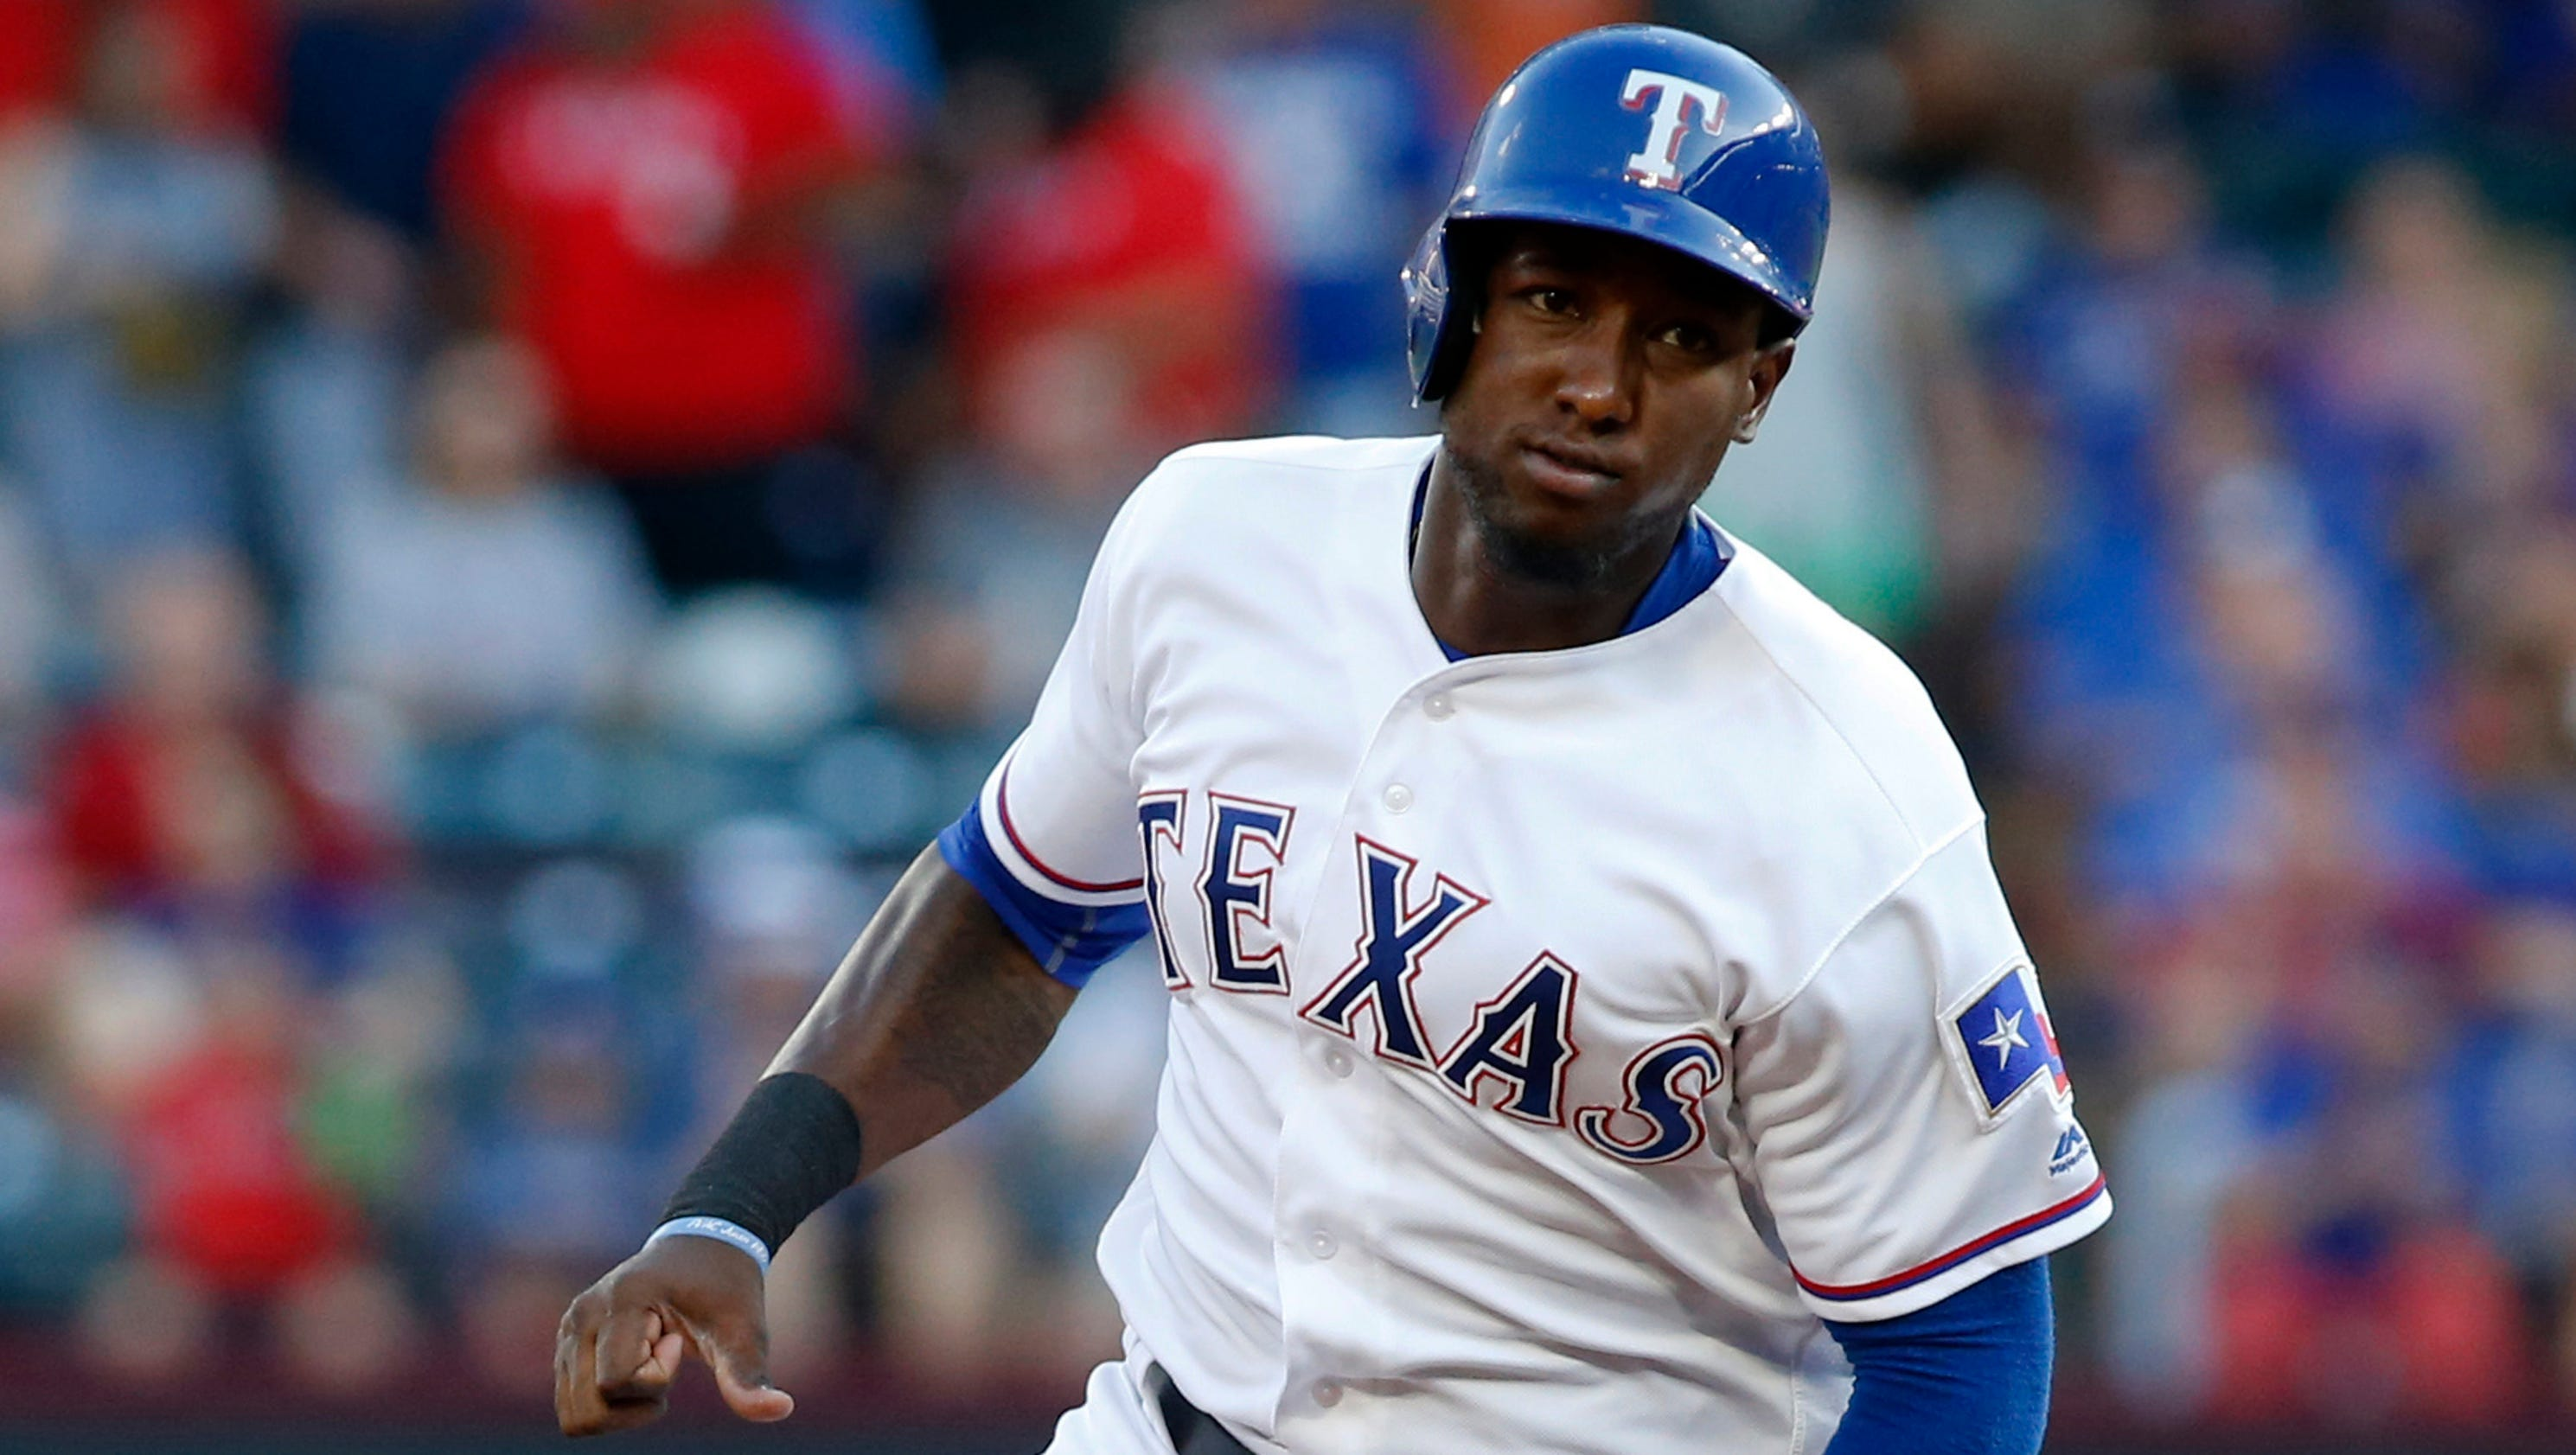 Rougned Odor homers twice in Rangers 8-3 victory over Royals